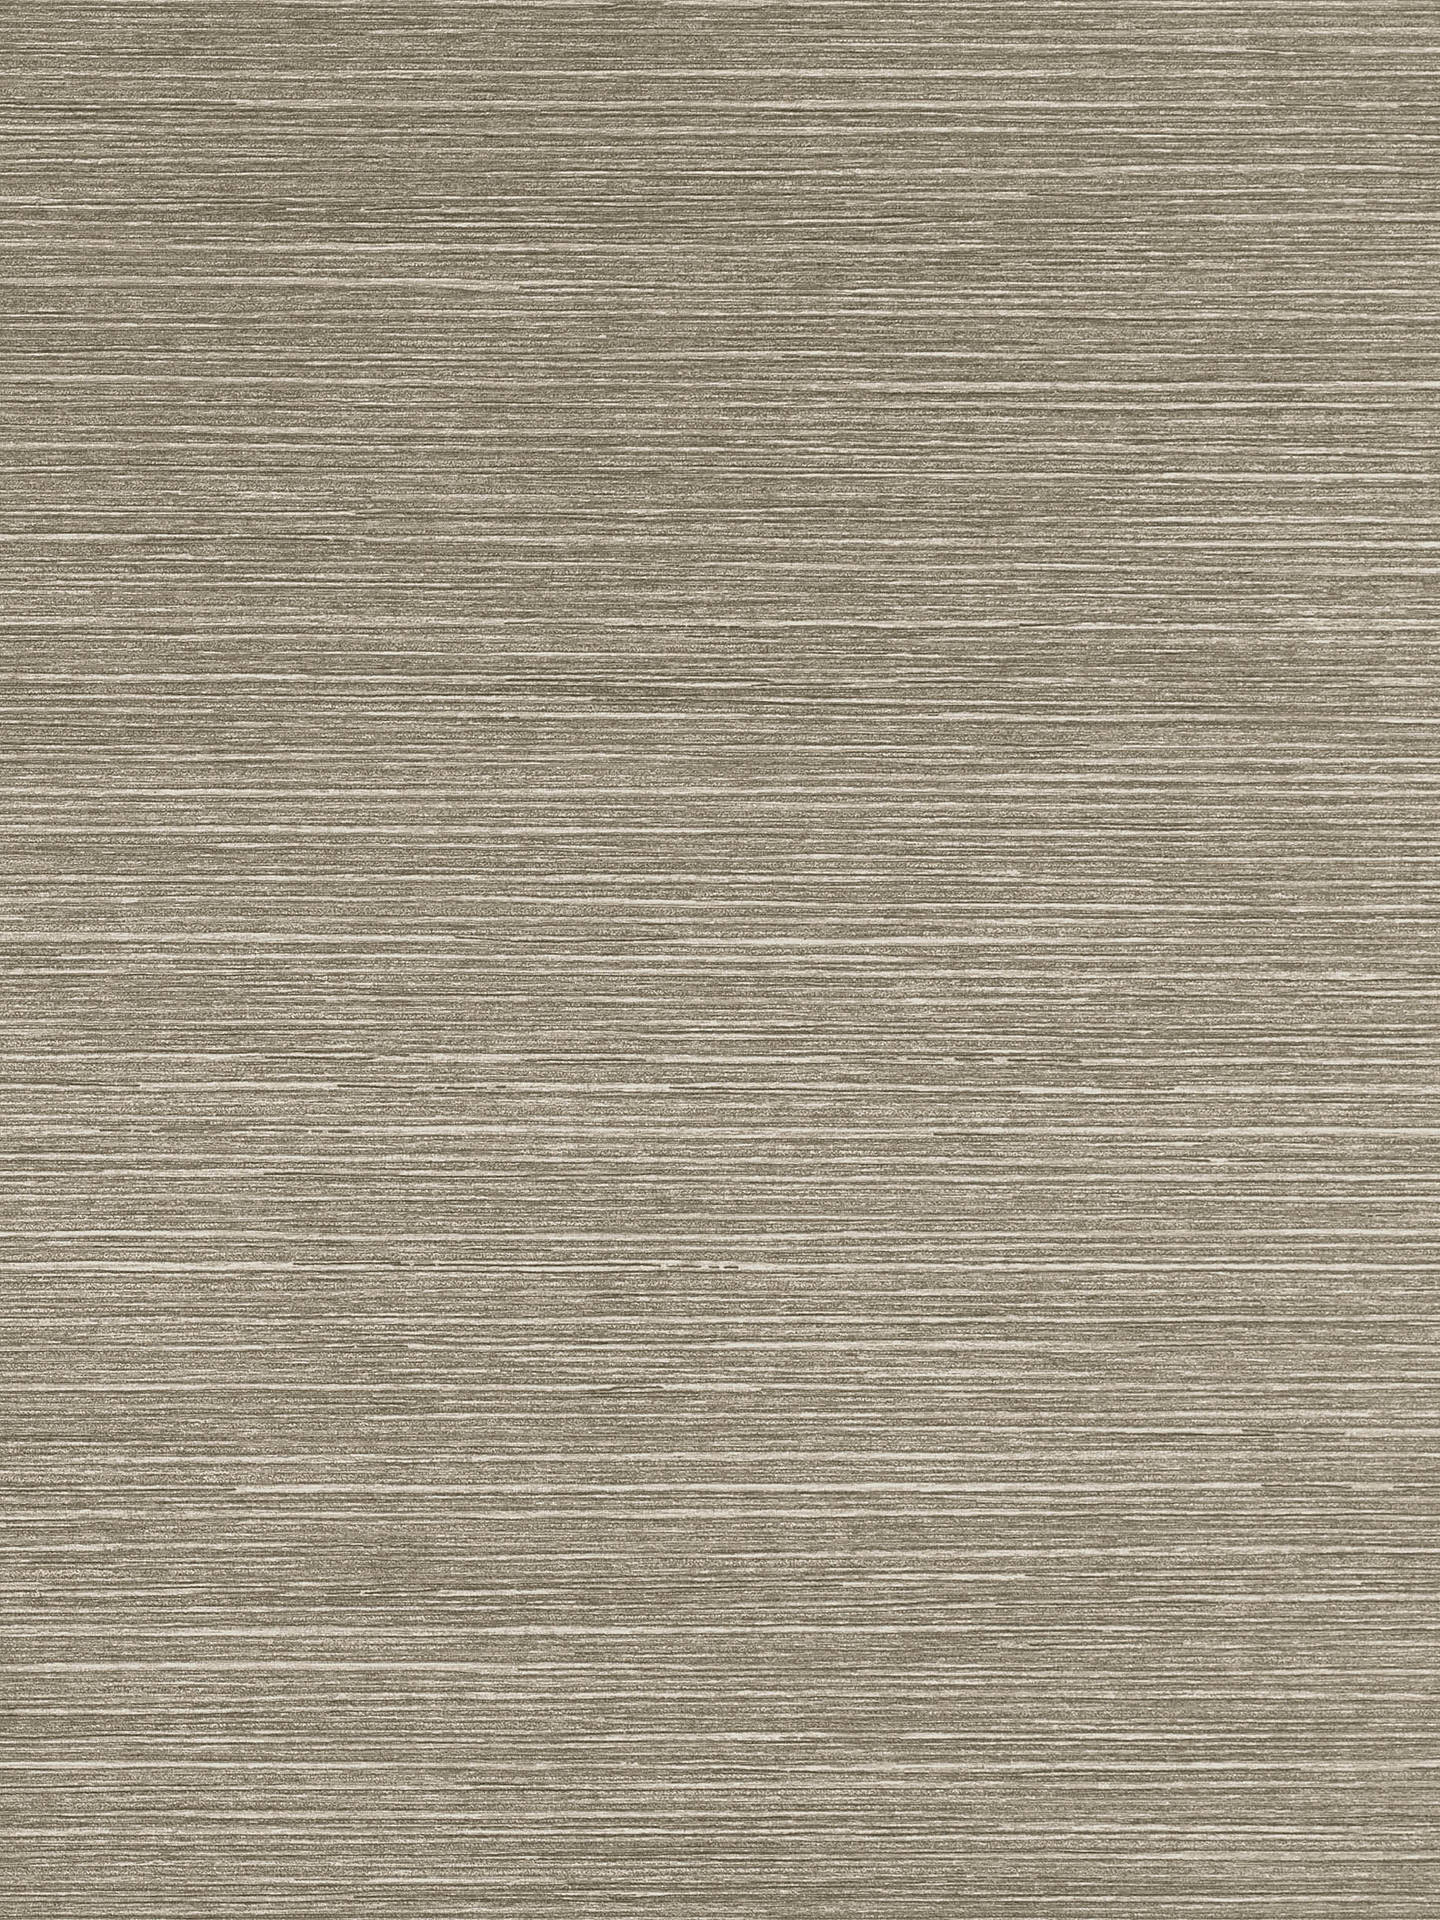 Buy Romo Pica Wallpaper, Vintage Bronze W403/03 Online at johnlewis.com